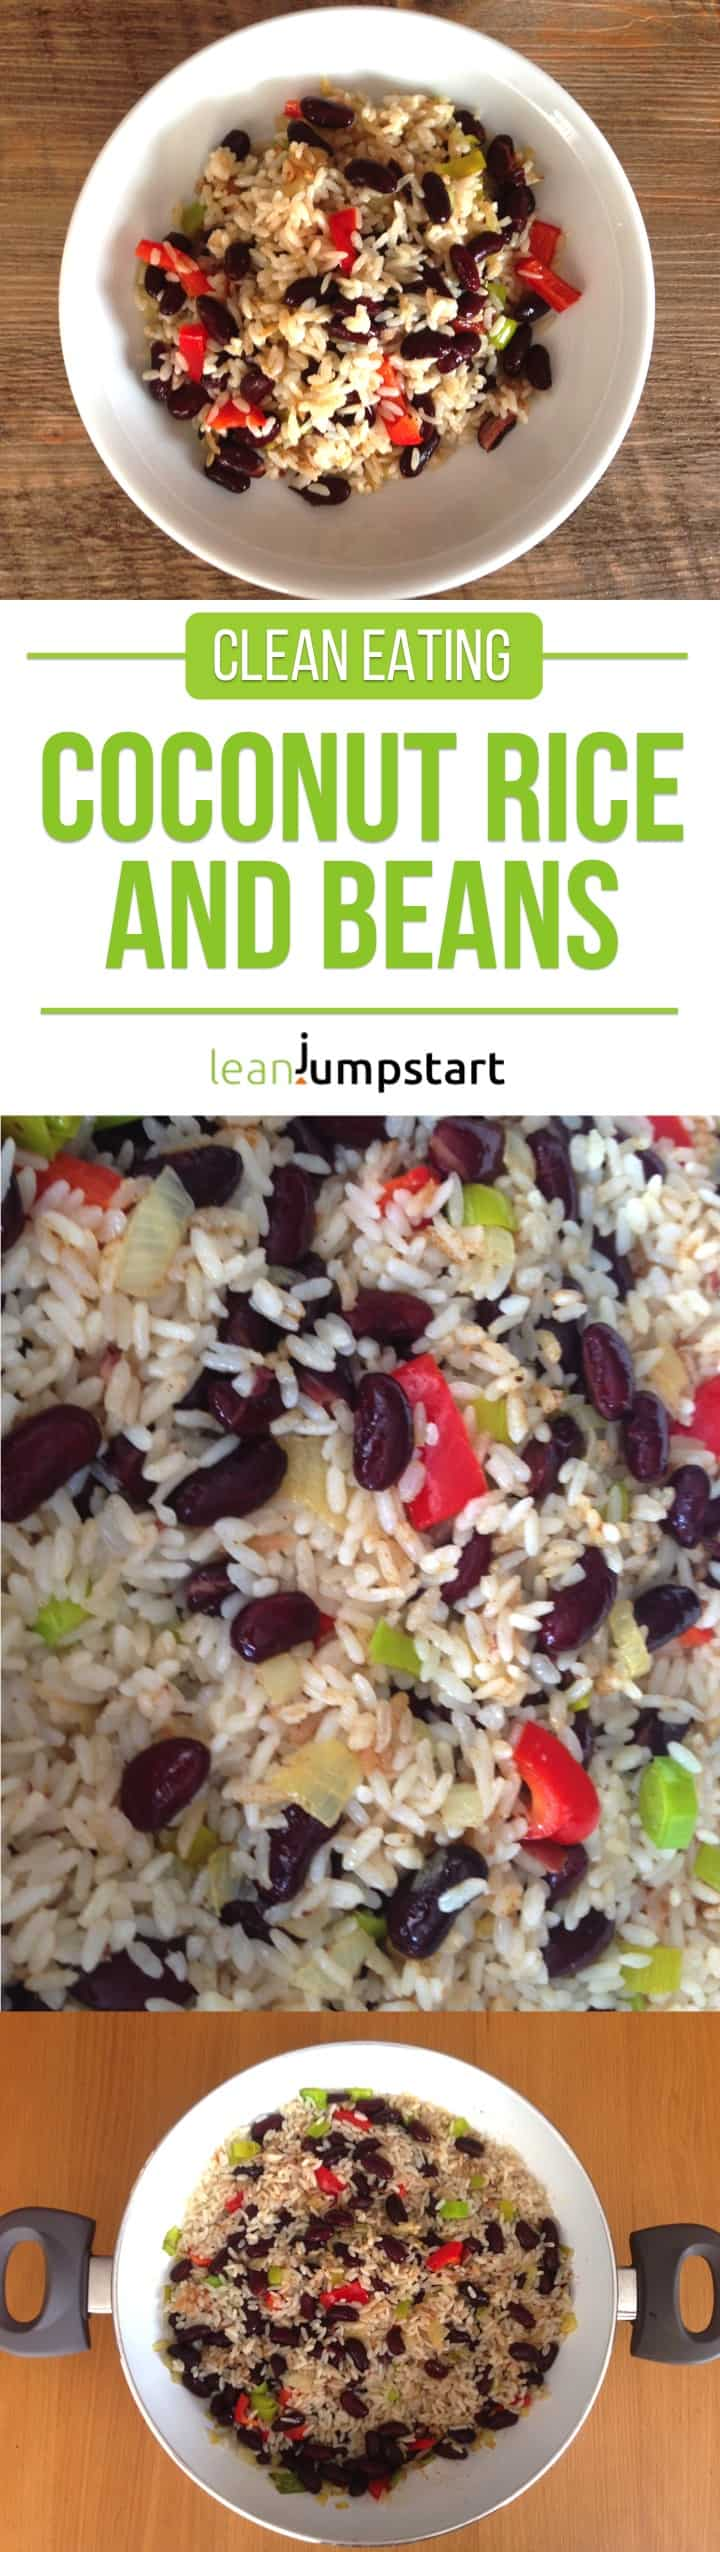 coconut rice and beans for weight management: easy and filling recipe